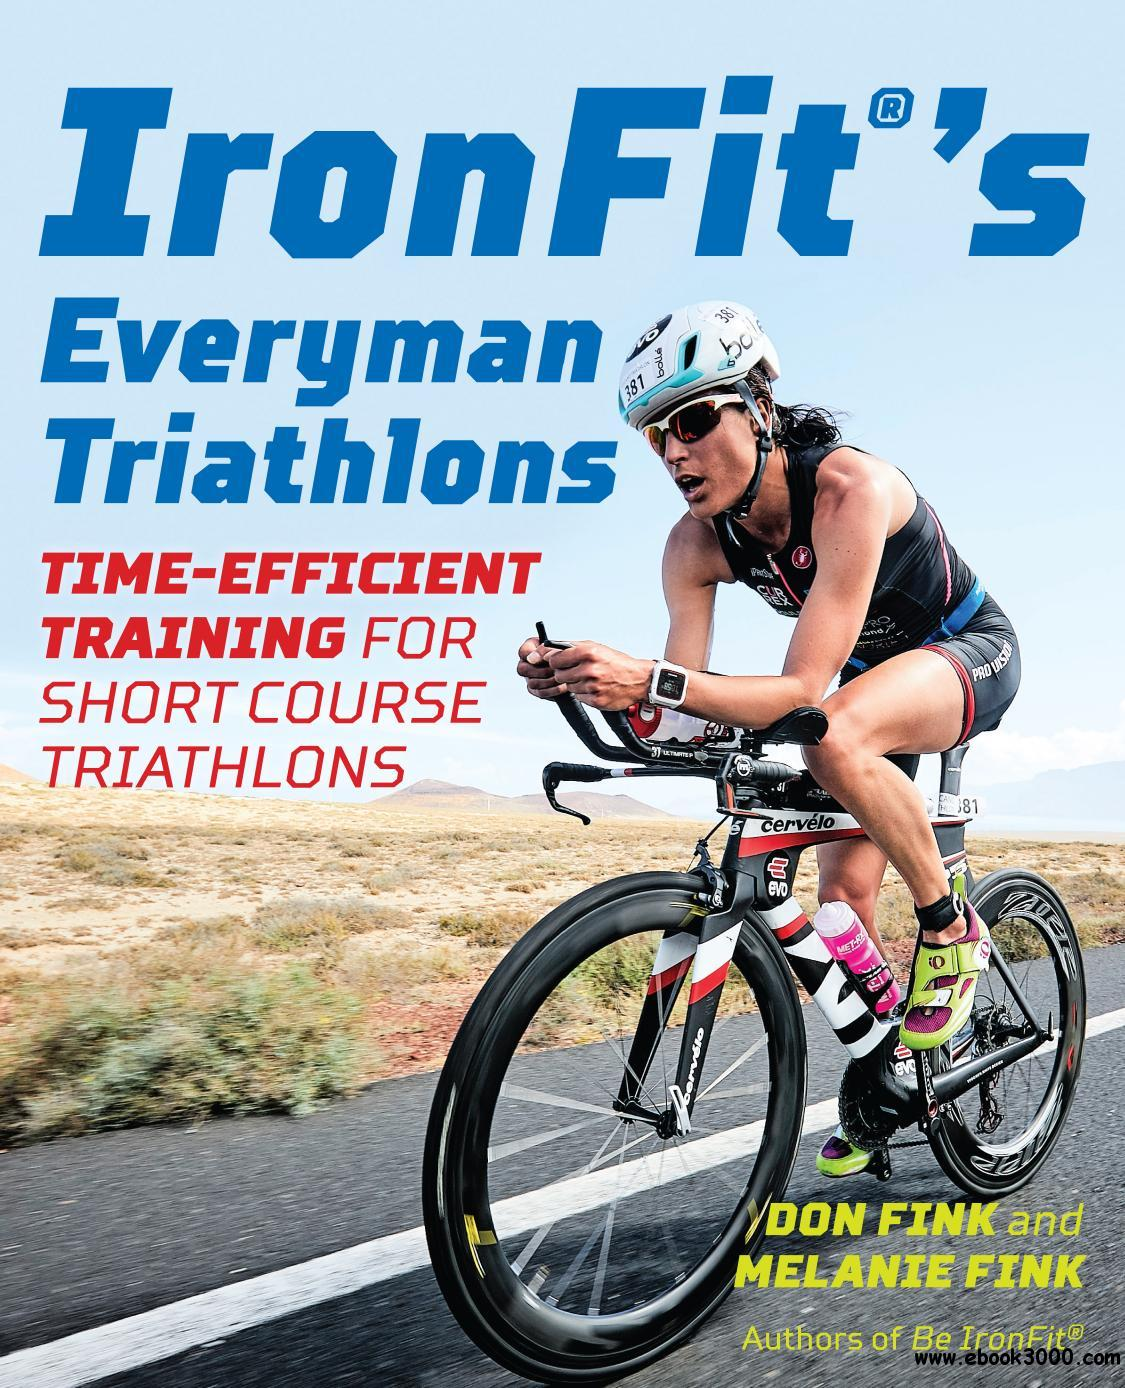 IronFit's Everyman Triathlons: Time-Efficient Training for Short Course Triathlons